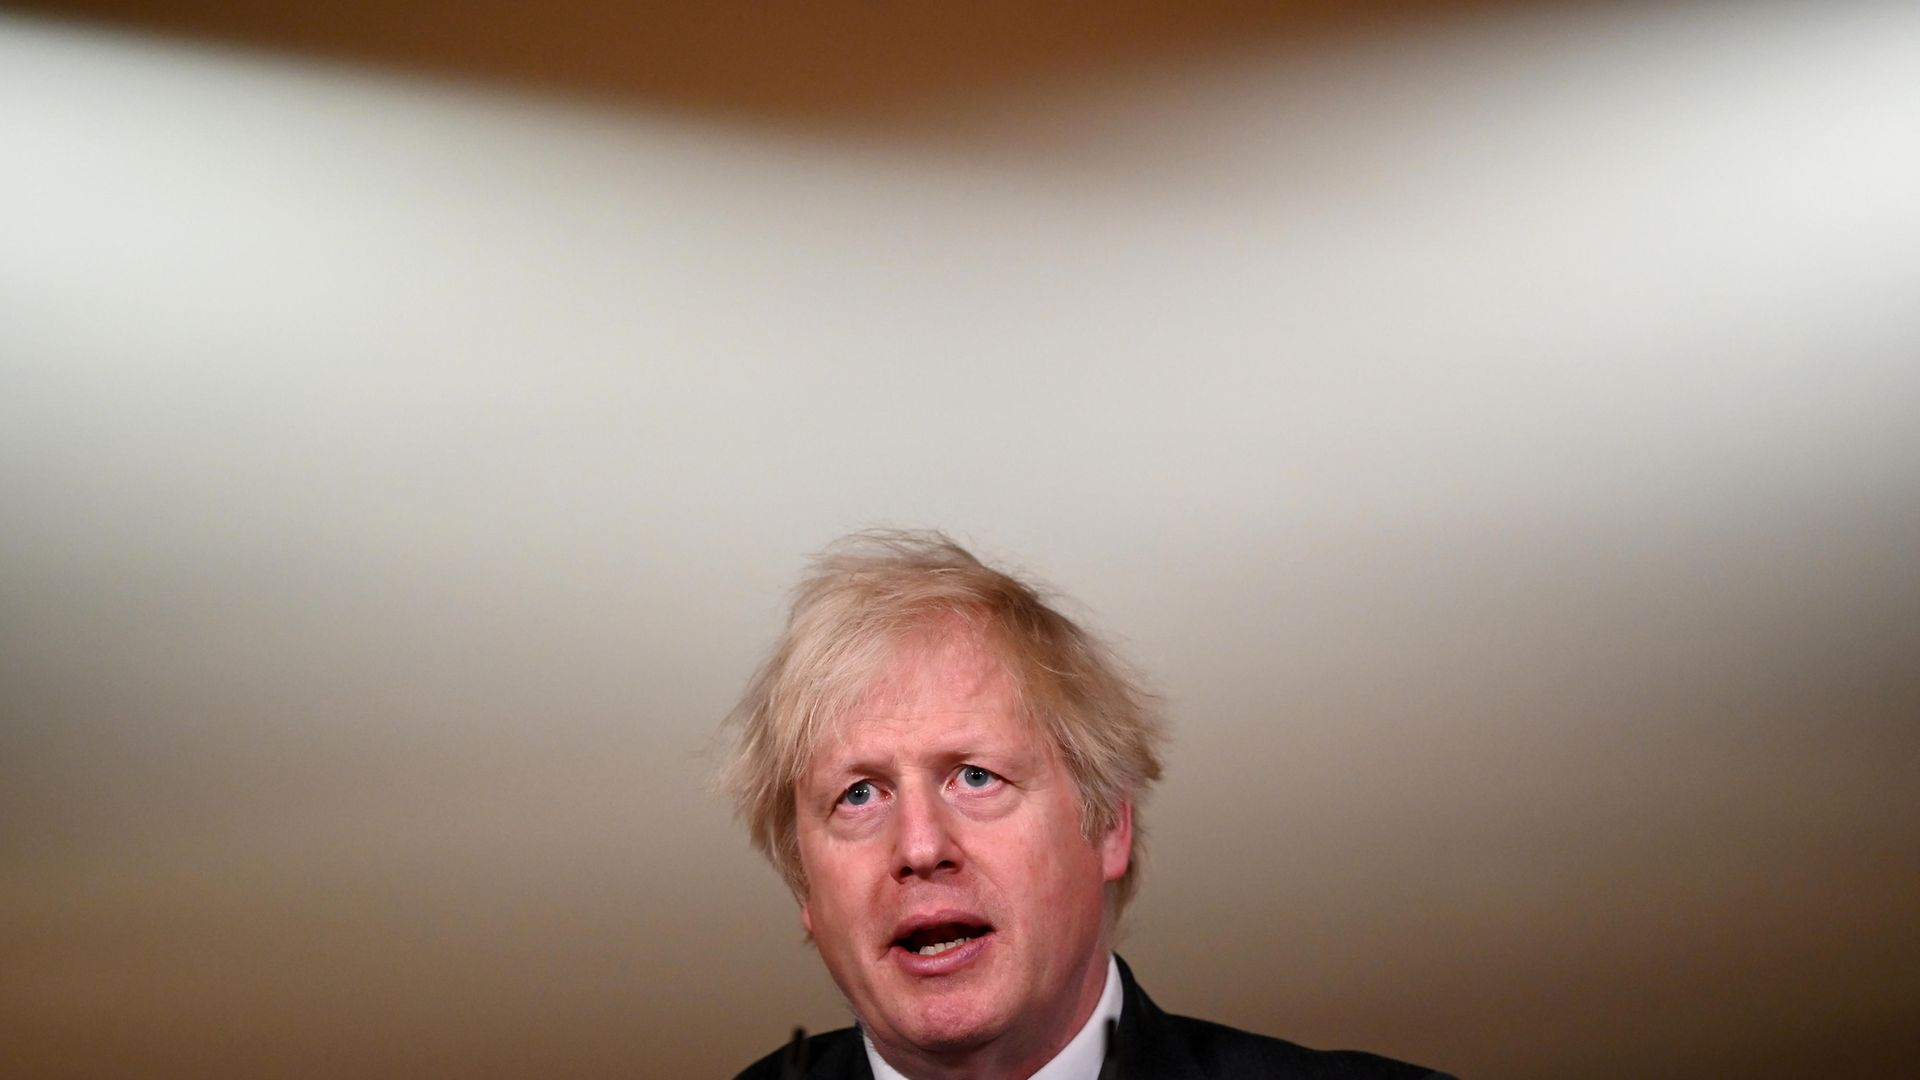 Prime minister Boris Johnson during a media briefing in Downing Street, London - Credit: PA